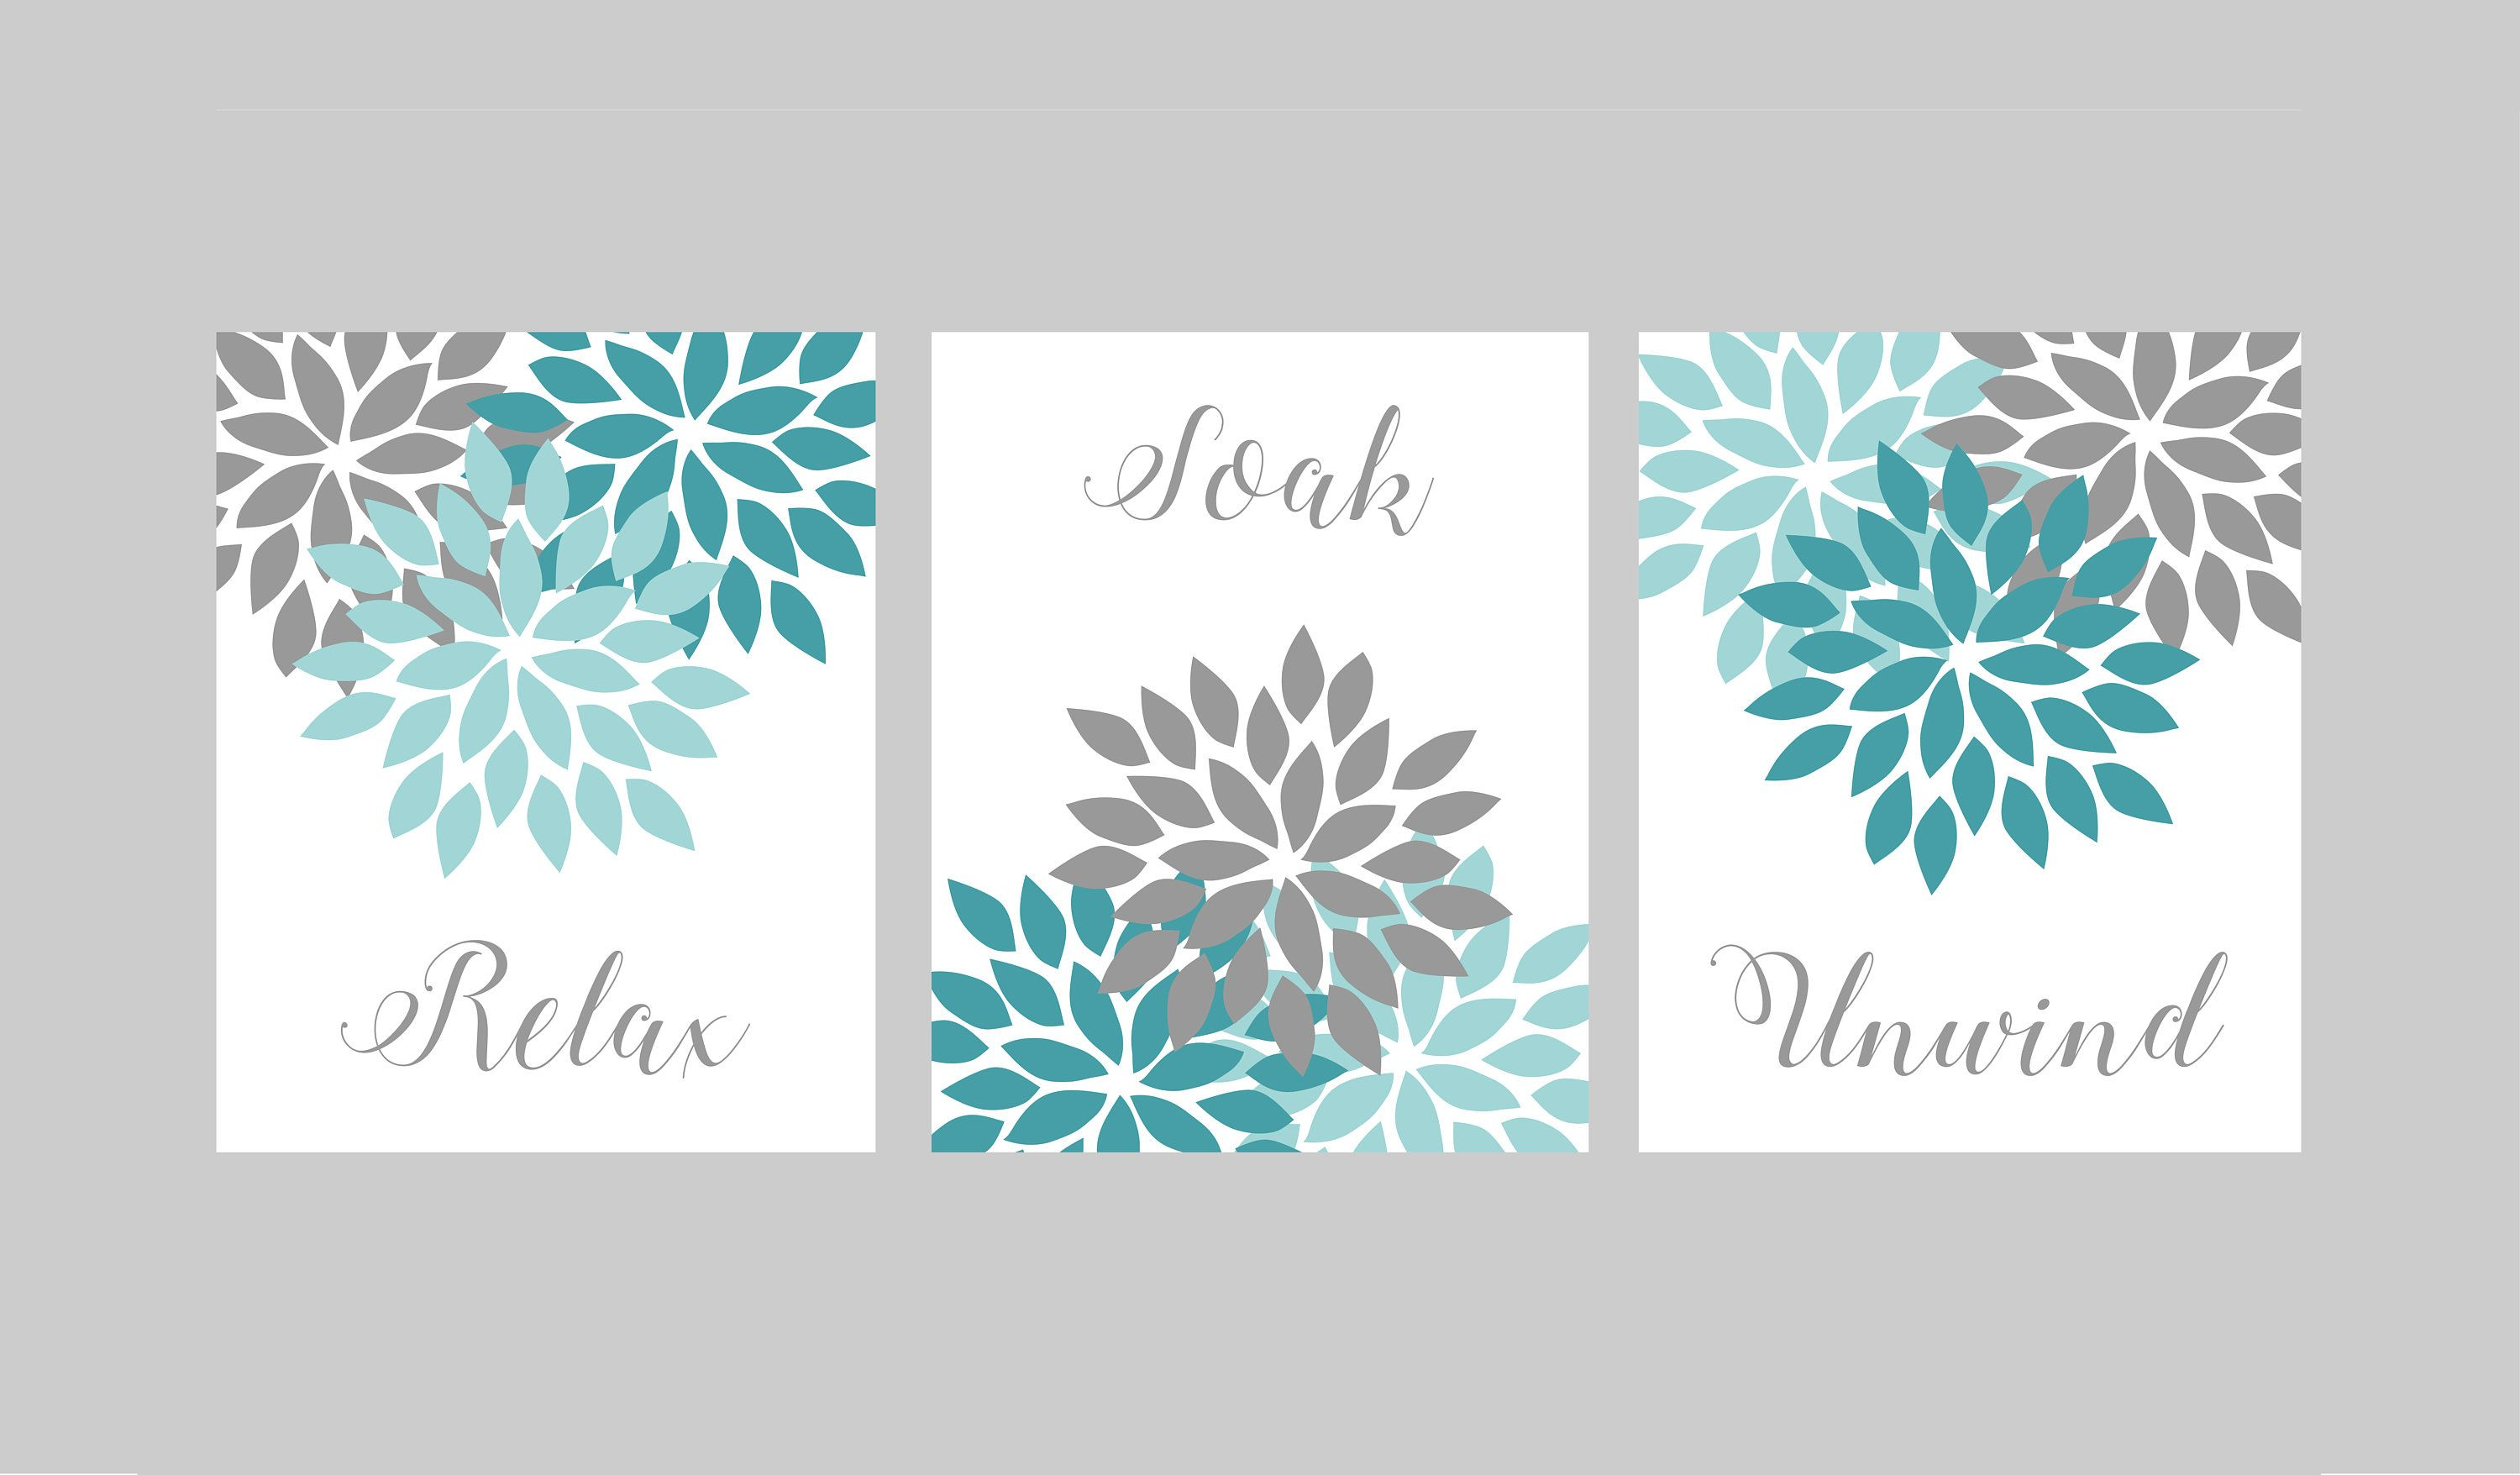 Teal Gray Bathroom Wall Art Bathroom Wall Decor Relax Soak Etsy In 2020 Gray Bathroom Walls Bathroom Wall Art Bathroom Art Printables